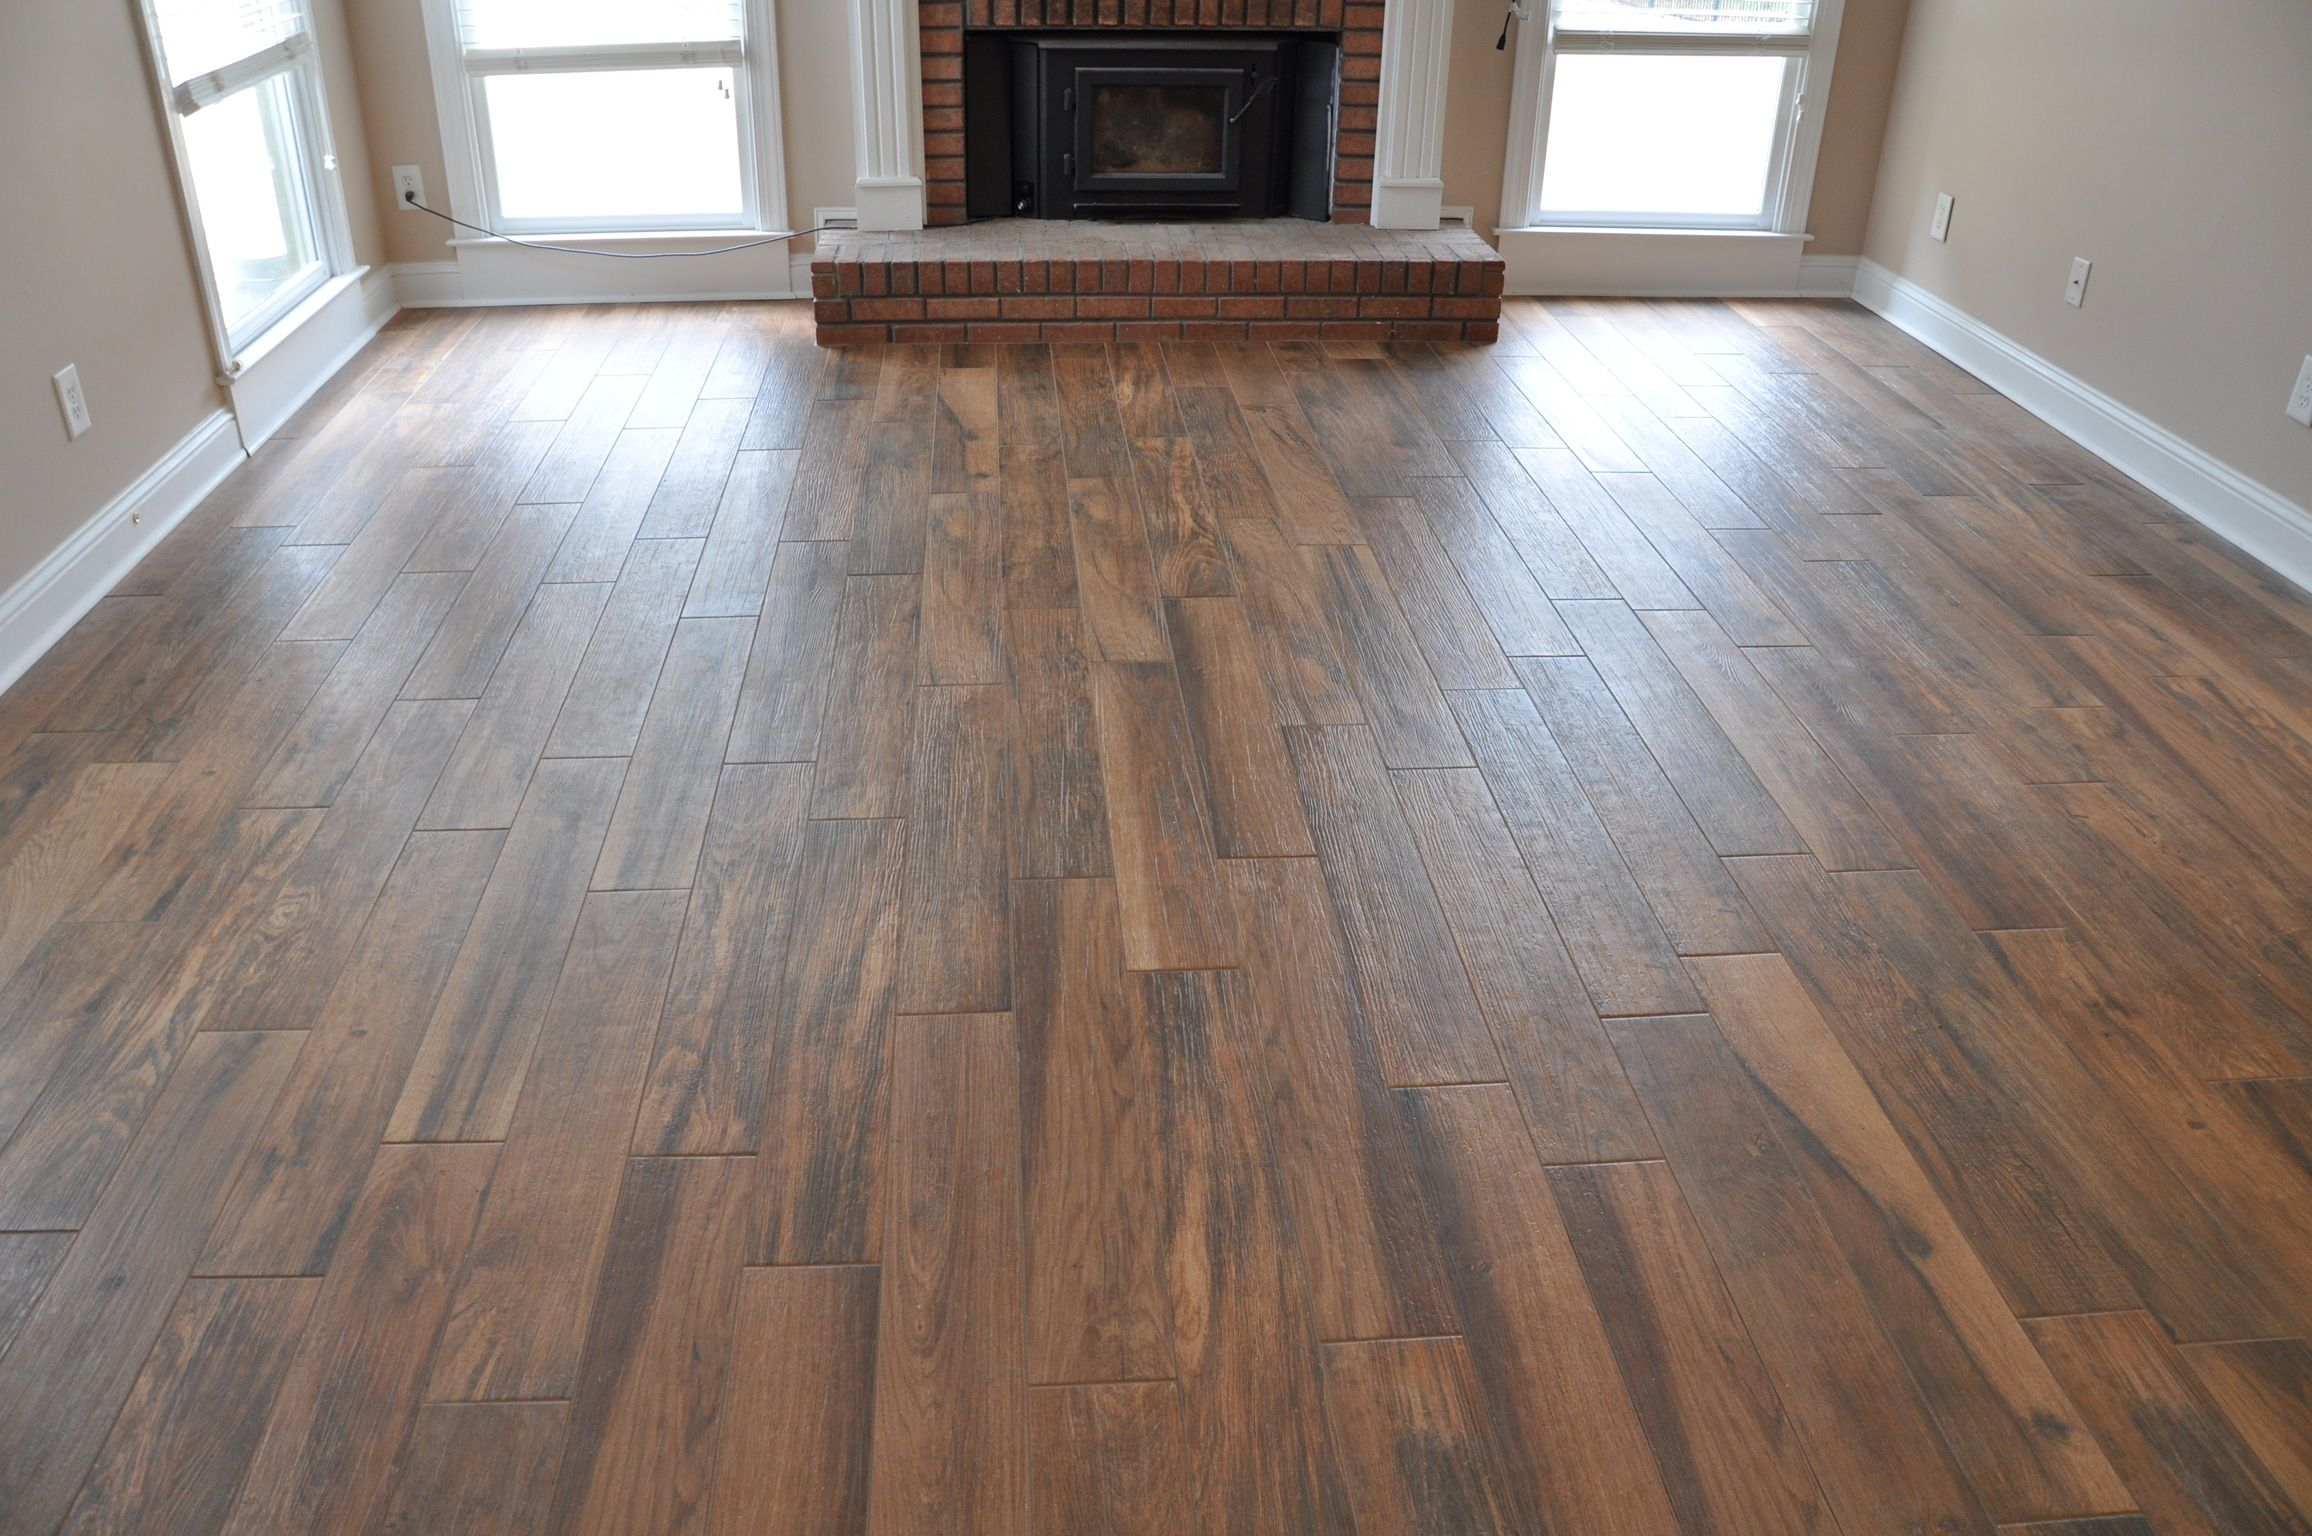 Wood Look Porcelain Tile Google Search